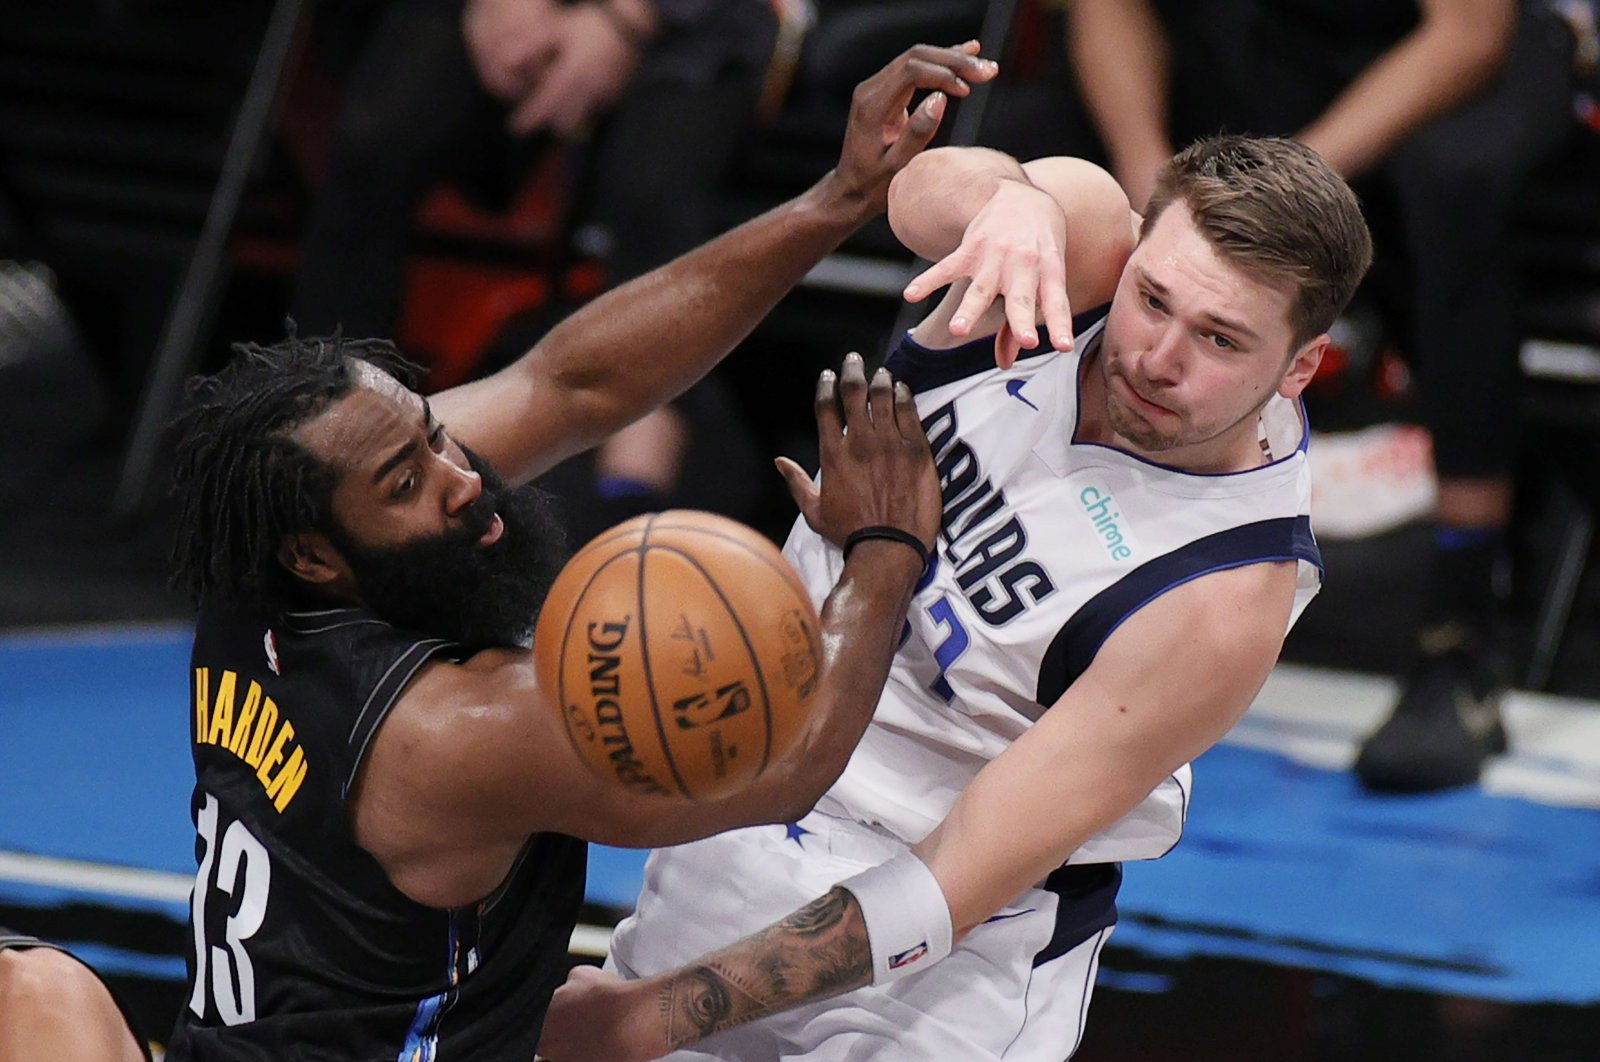 Dallas Mavericks' Luka Doncic (R) passes the ball as Brooklyn Nets'James Harden (L) defends during an NBA match at Barclays Center, New York, Feb. 27, 2021. (AFP Photo)